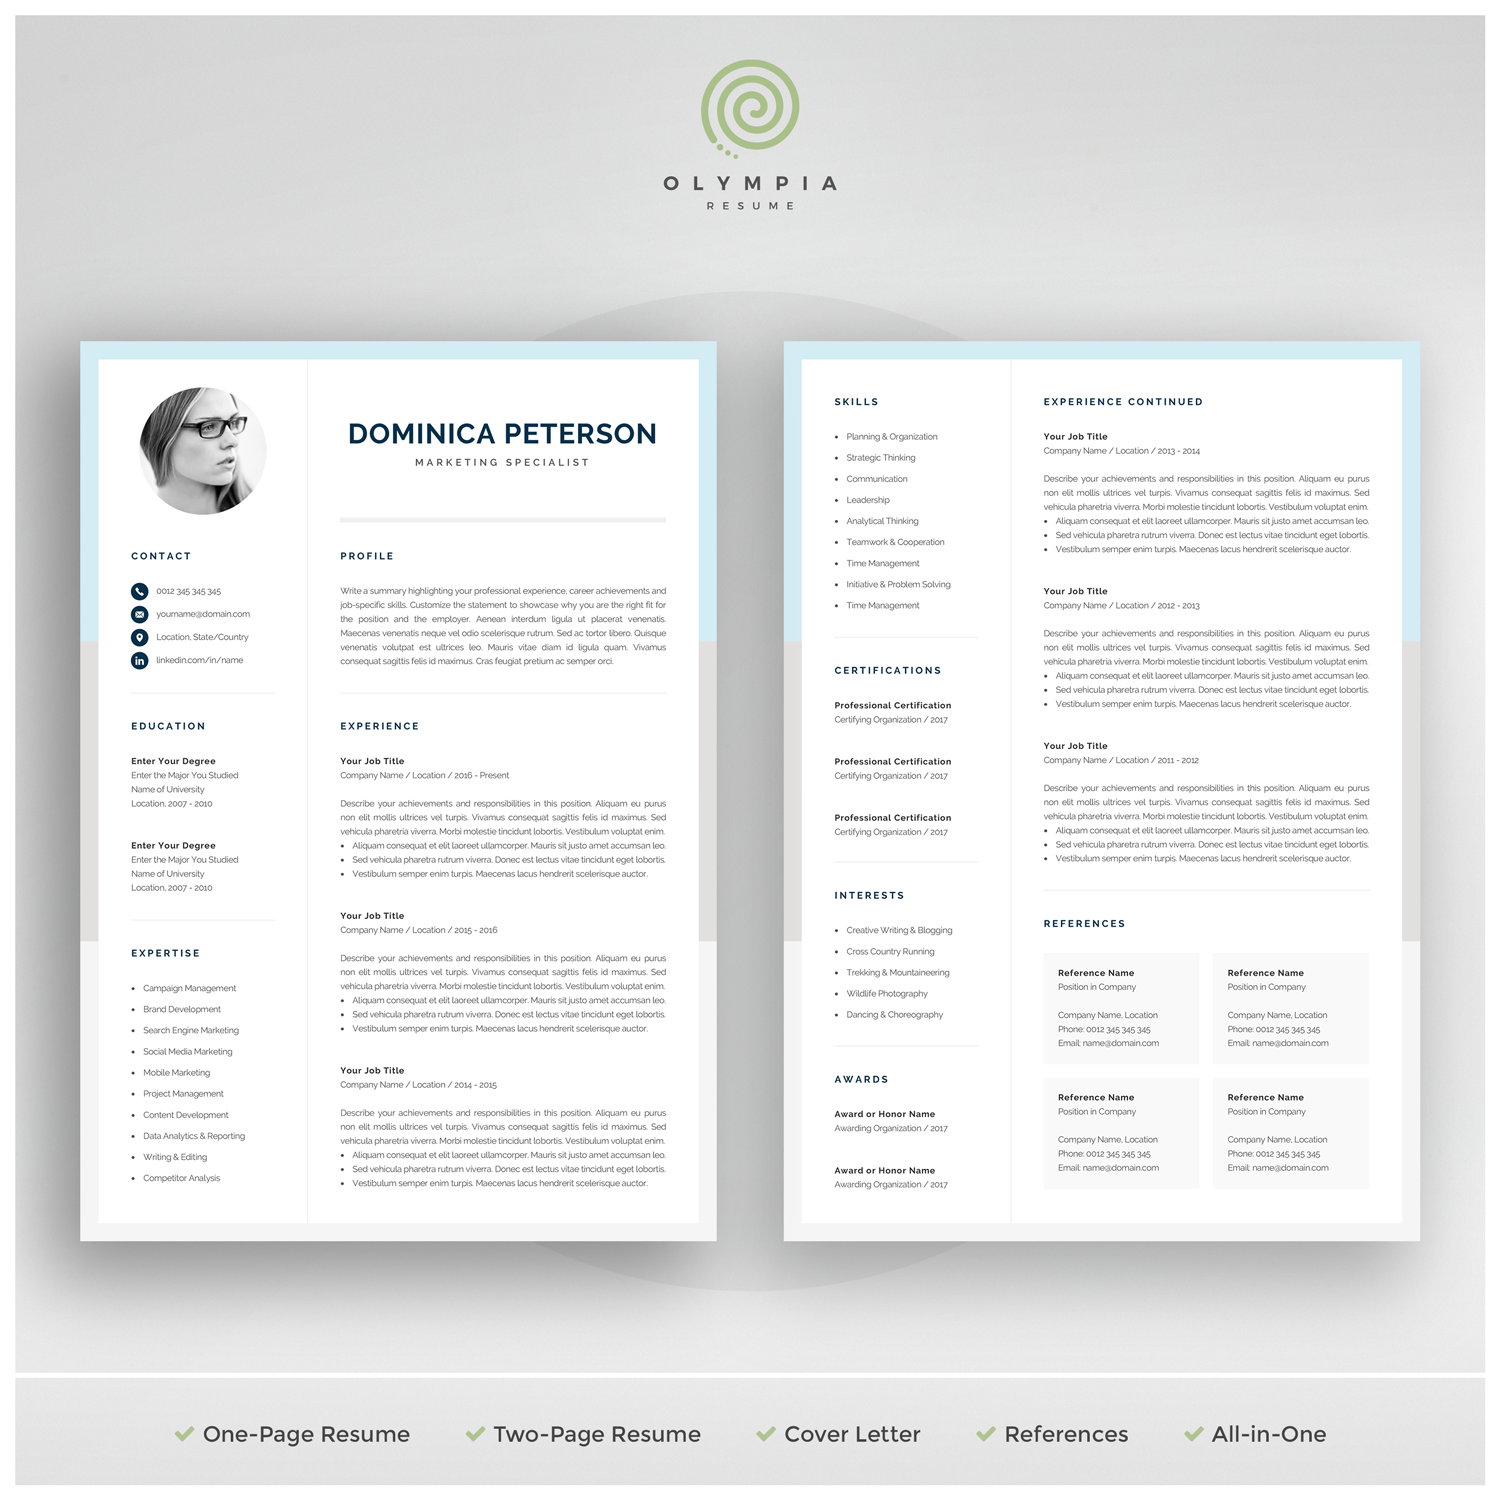 Modern Resume Template Creative Cv With Photo 1 2 Page Marketing Cv Photo Resume For Word Mac Or Pc Instant Download Dominica